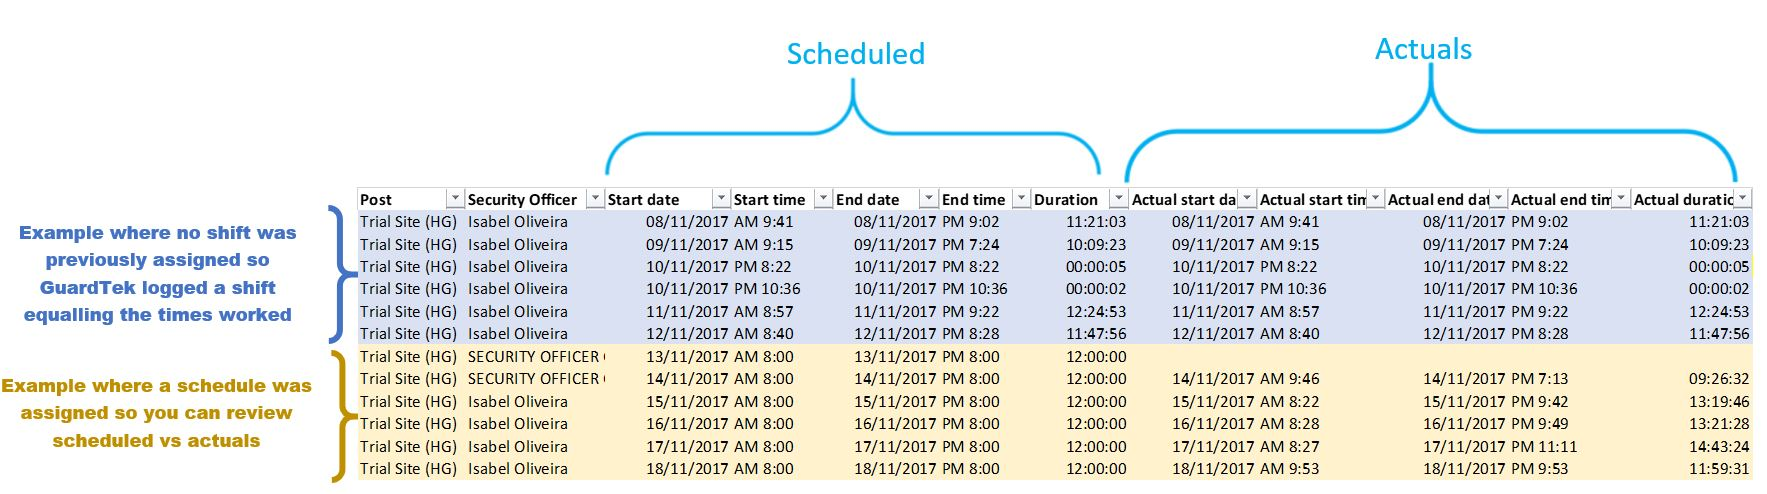 How To Set Up Attendance Tracking Automatic Reporting Shifts Worked - Security guard shift schedule template